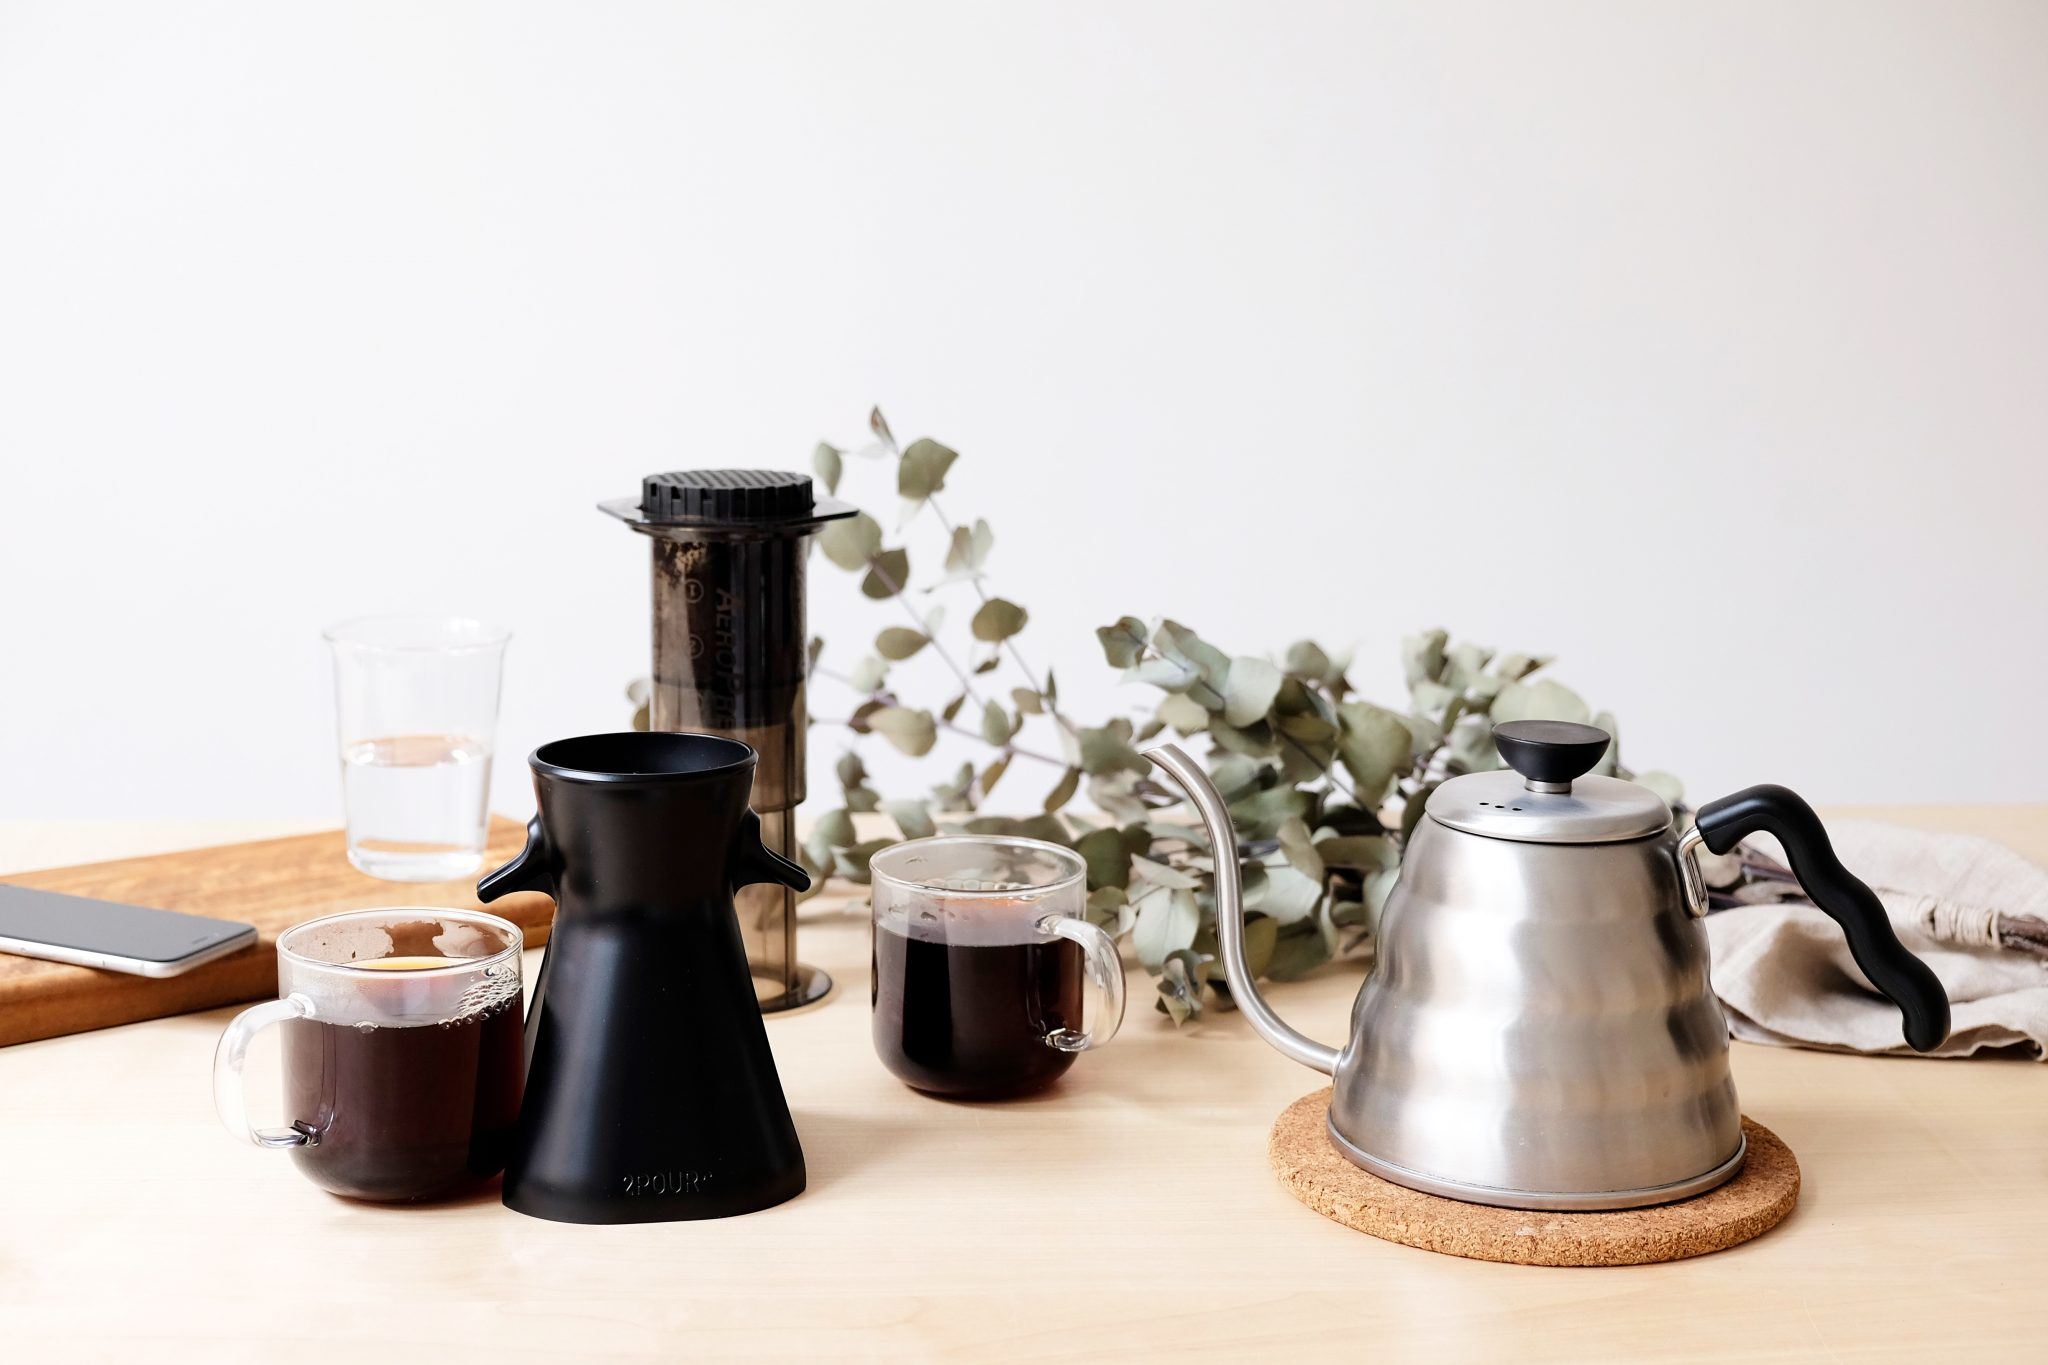 Wooden table with coffee equipment and cups of coffee